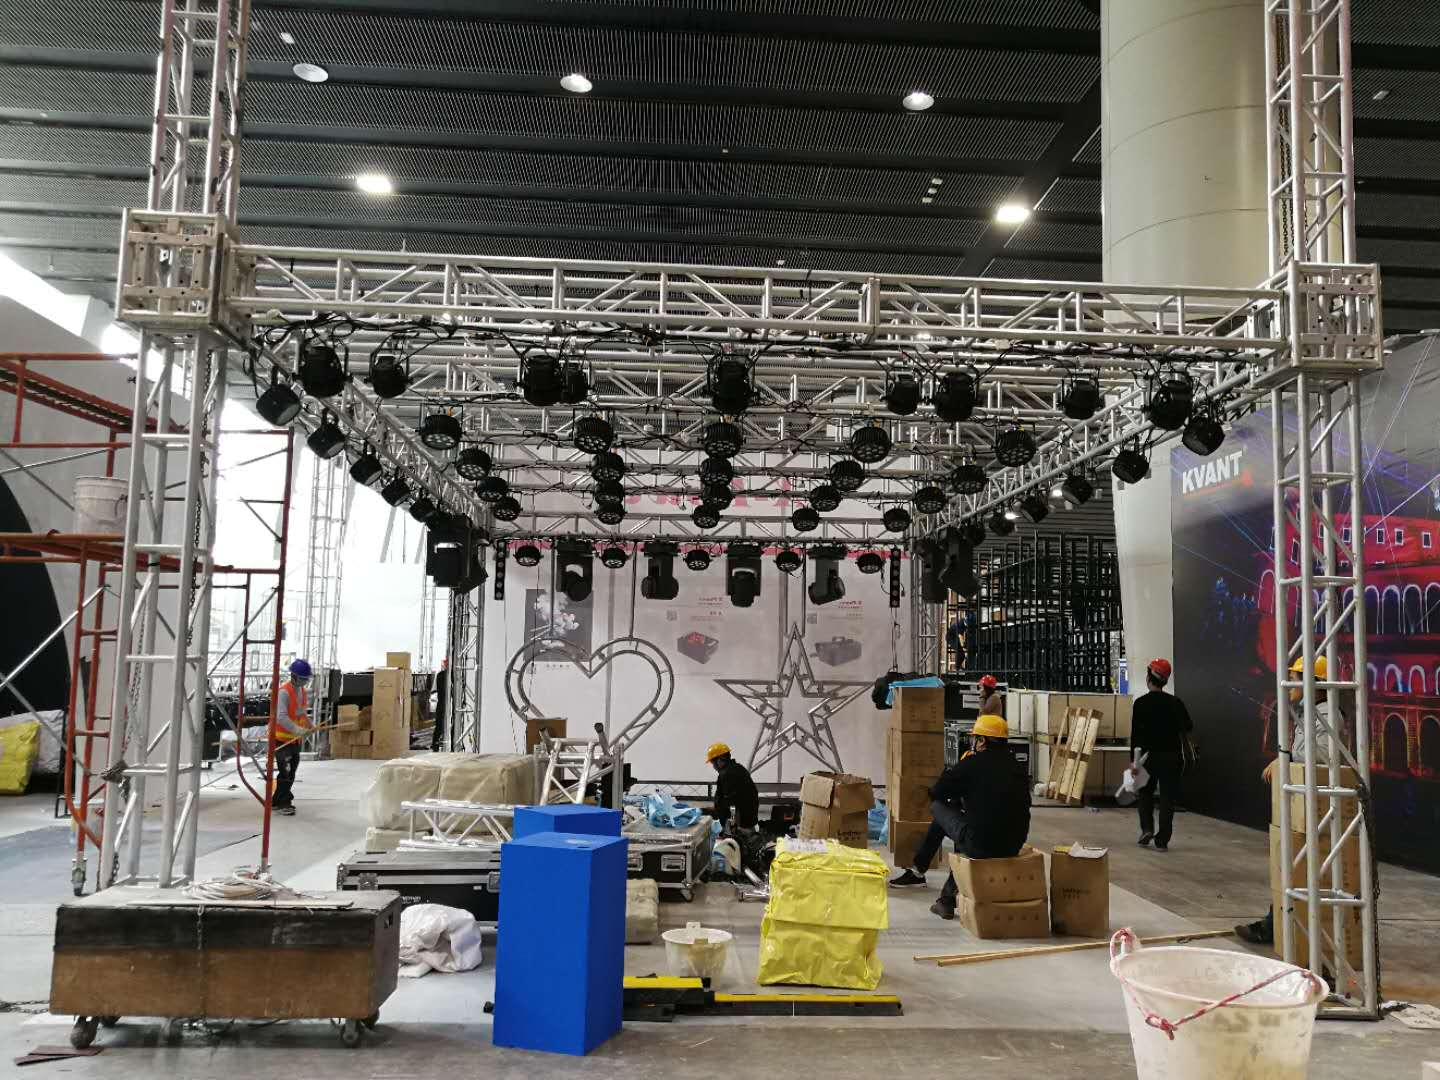 Building the booth of 2019 Guangzhou International Prolight+Sound Exhibition